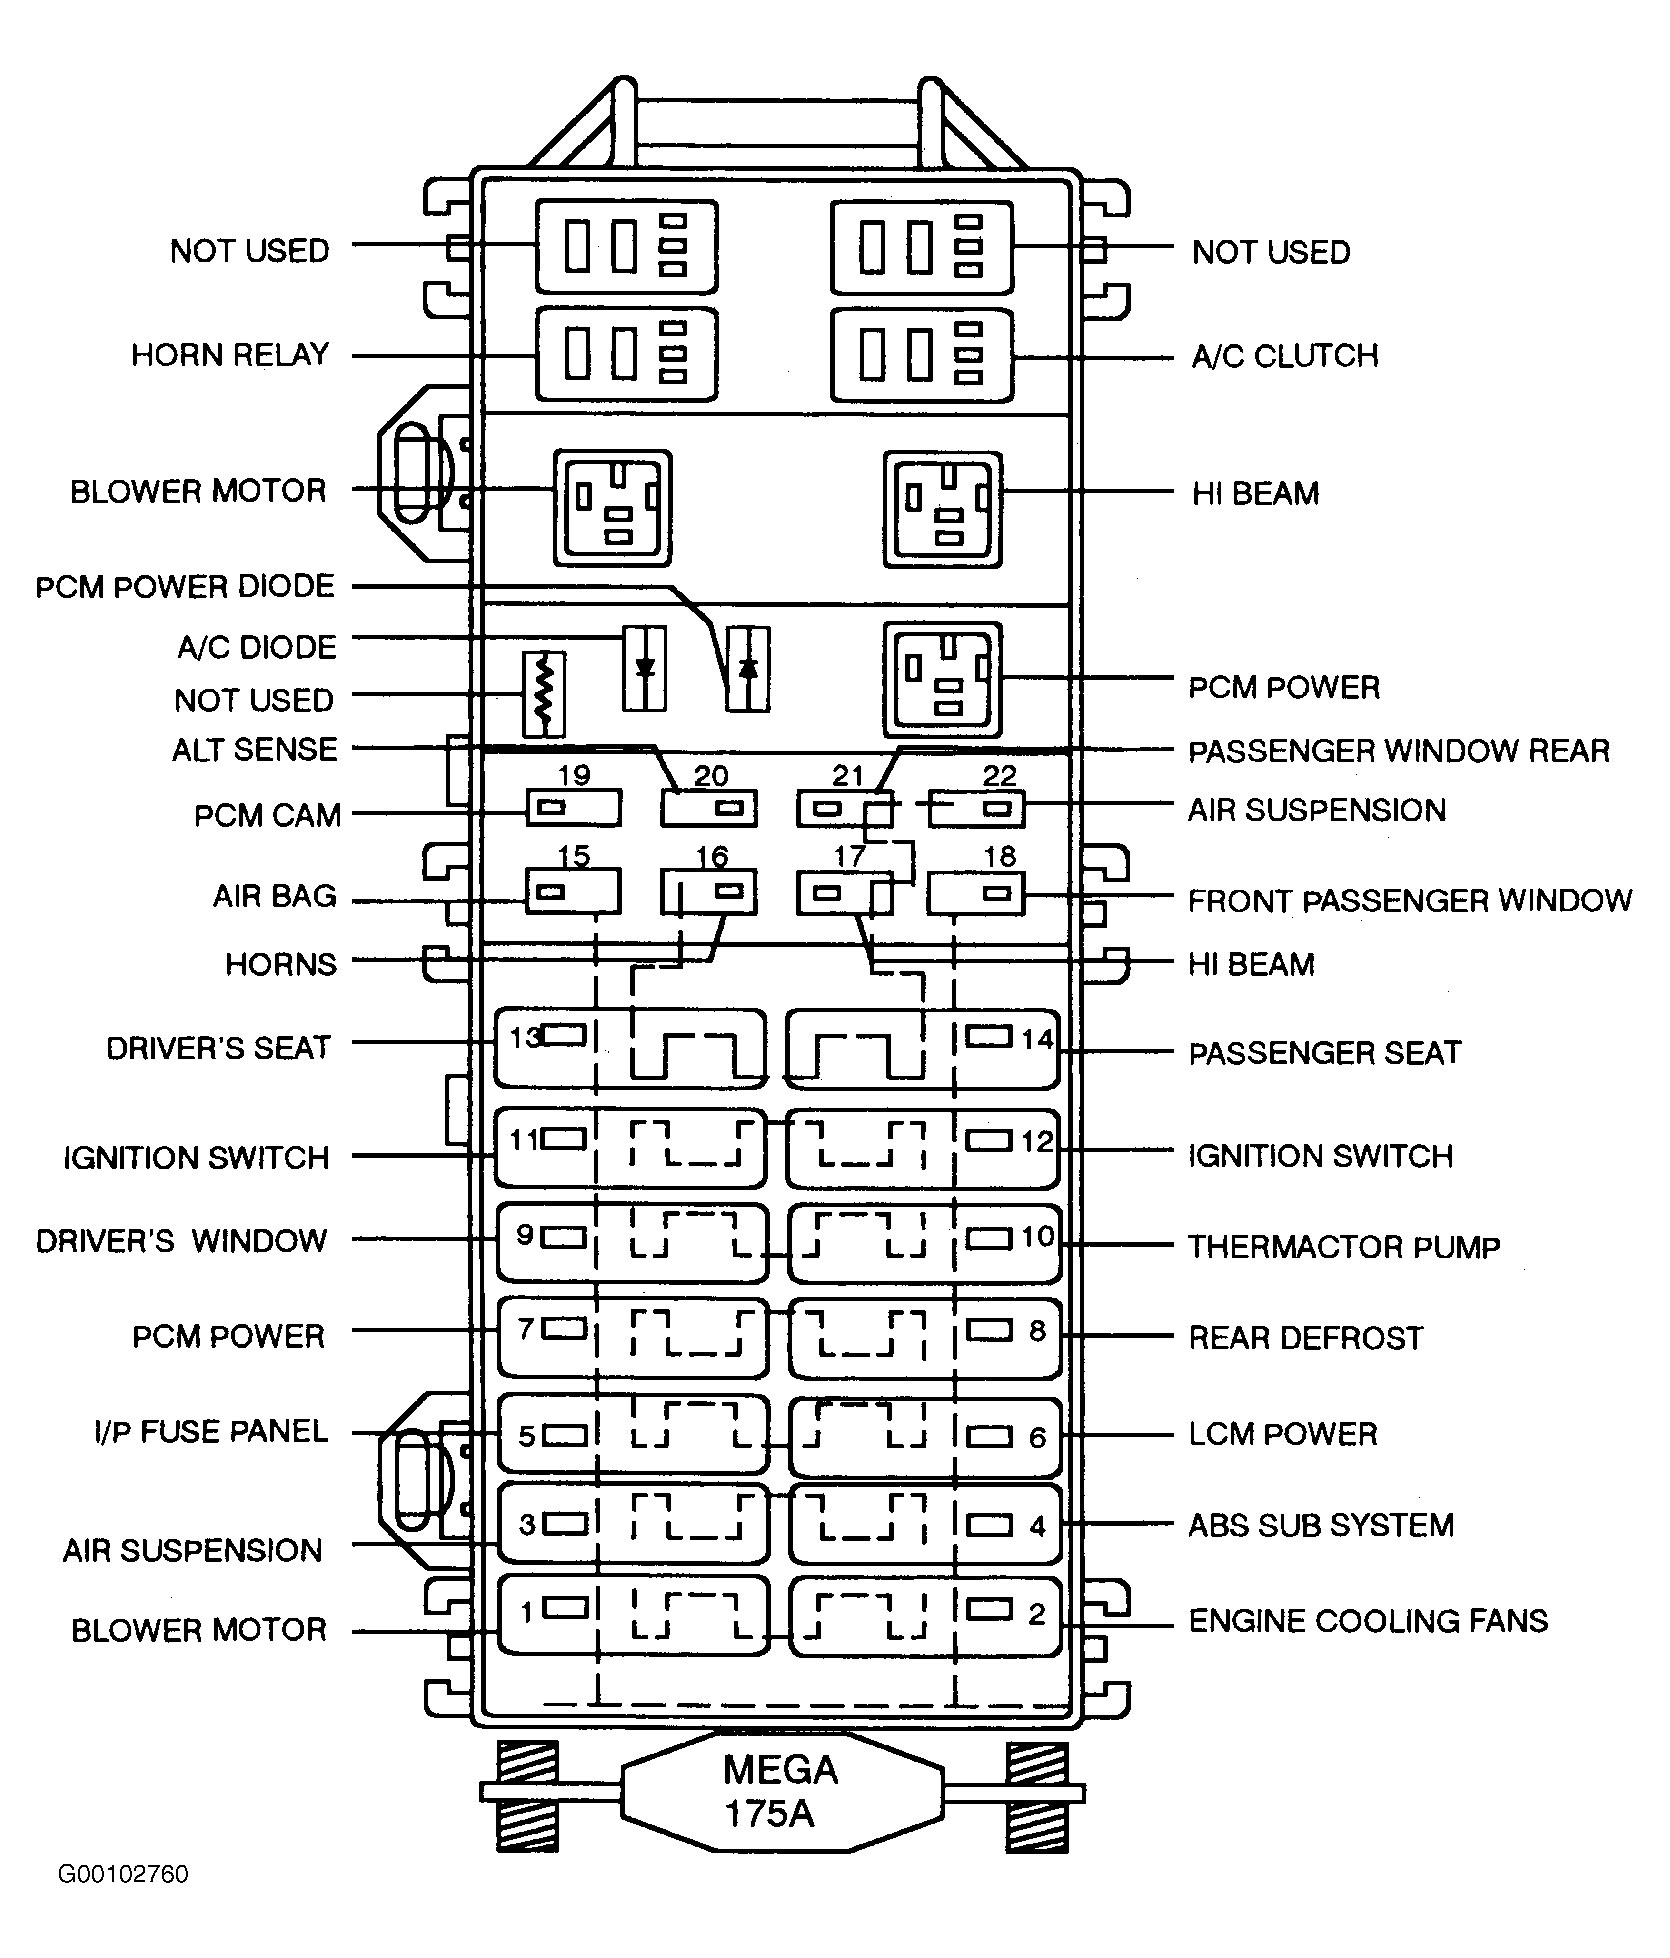 medium resolution of 2006 lincoln zephyr fuse box diagram wiring library2006 lincoln zephyr fuse box diagram